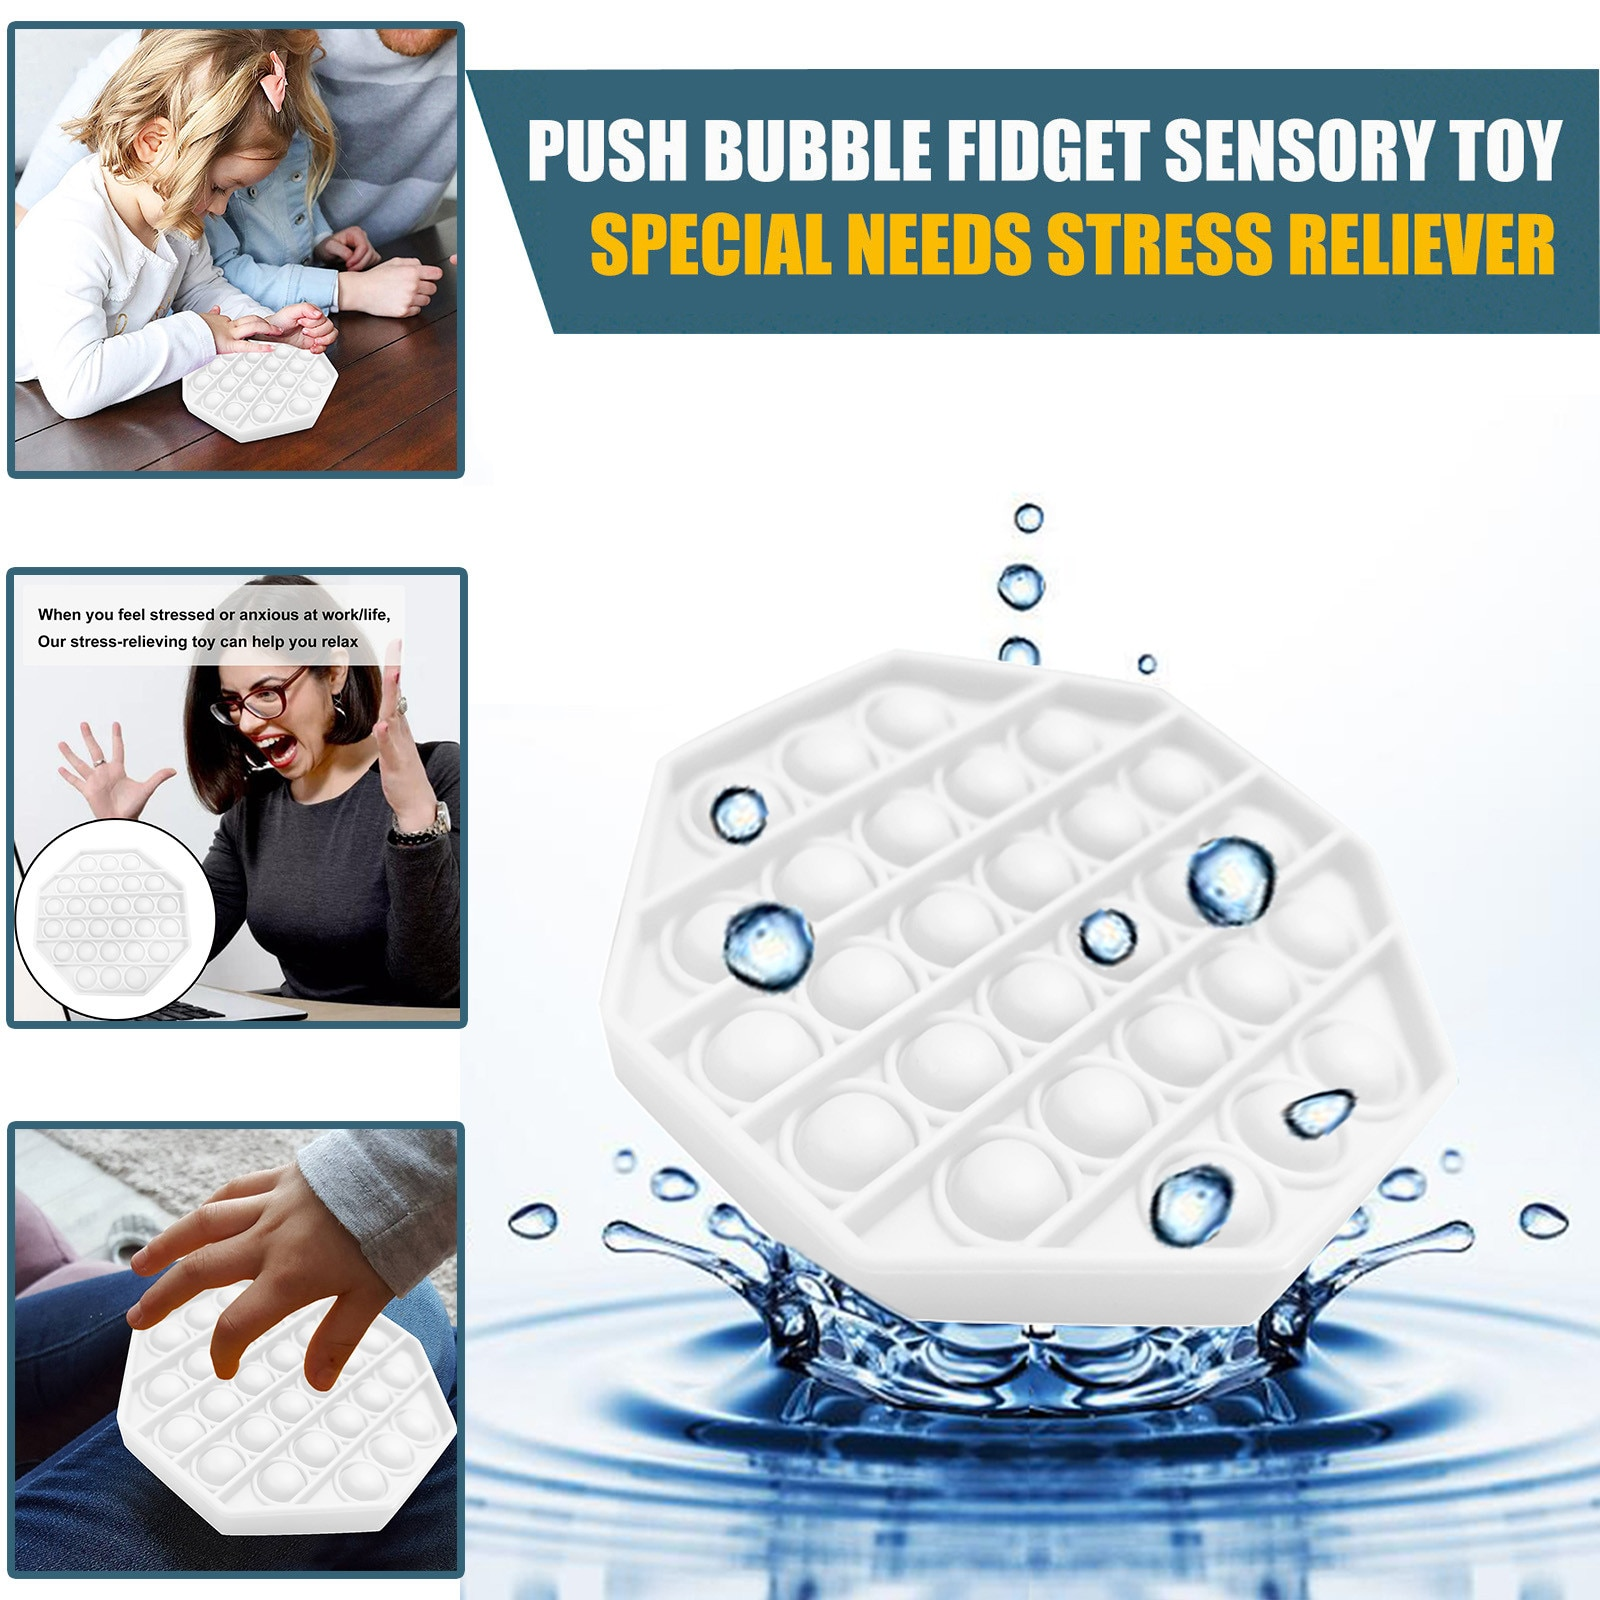 2020 Christmas Gift Black And White Unisex Toys To Relieve Stress And Fidgeting Autism Stress Reliev